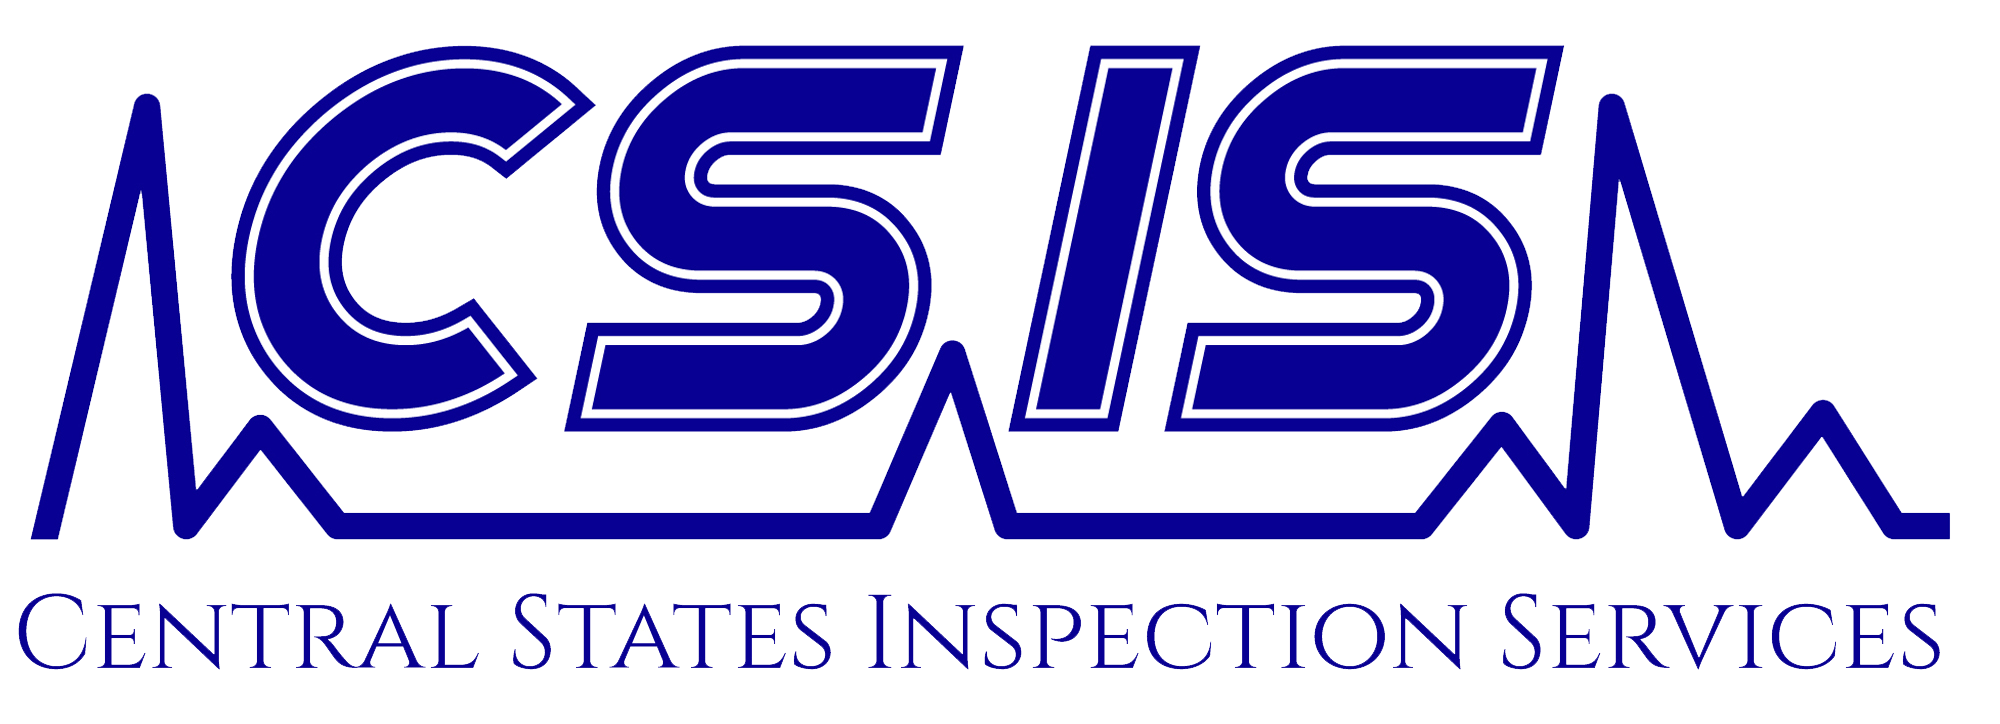 Central States Inspection Services